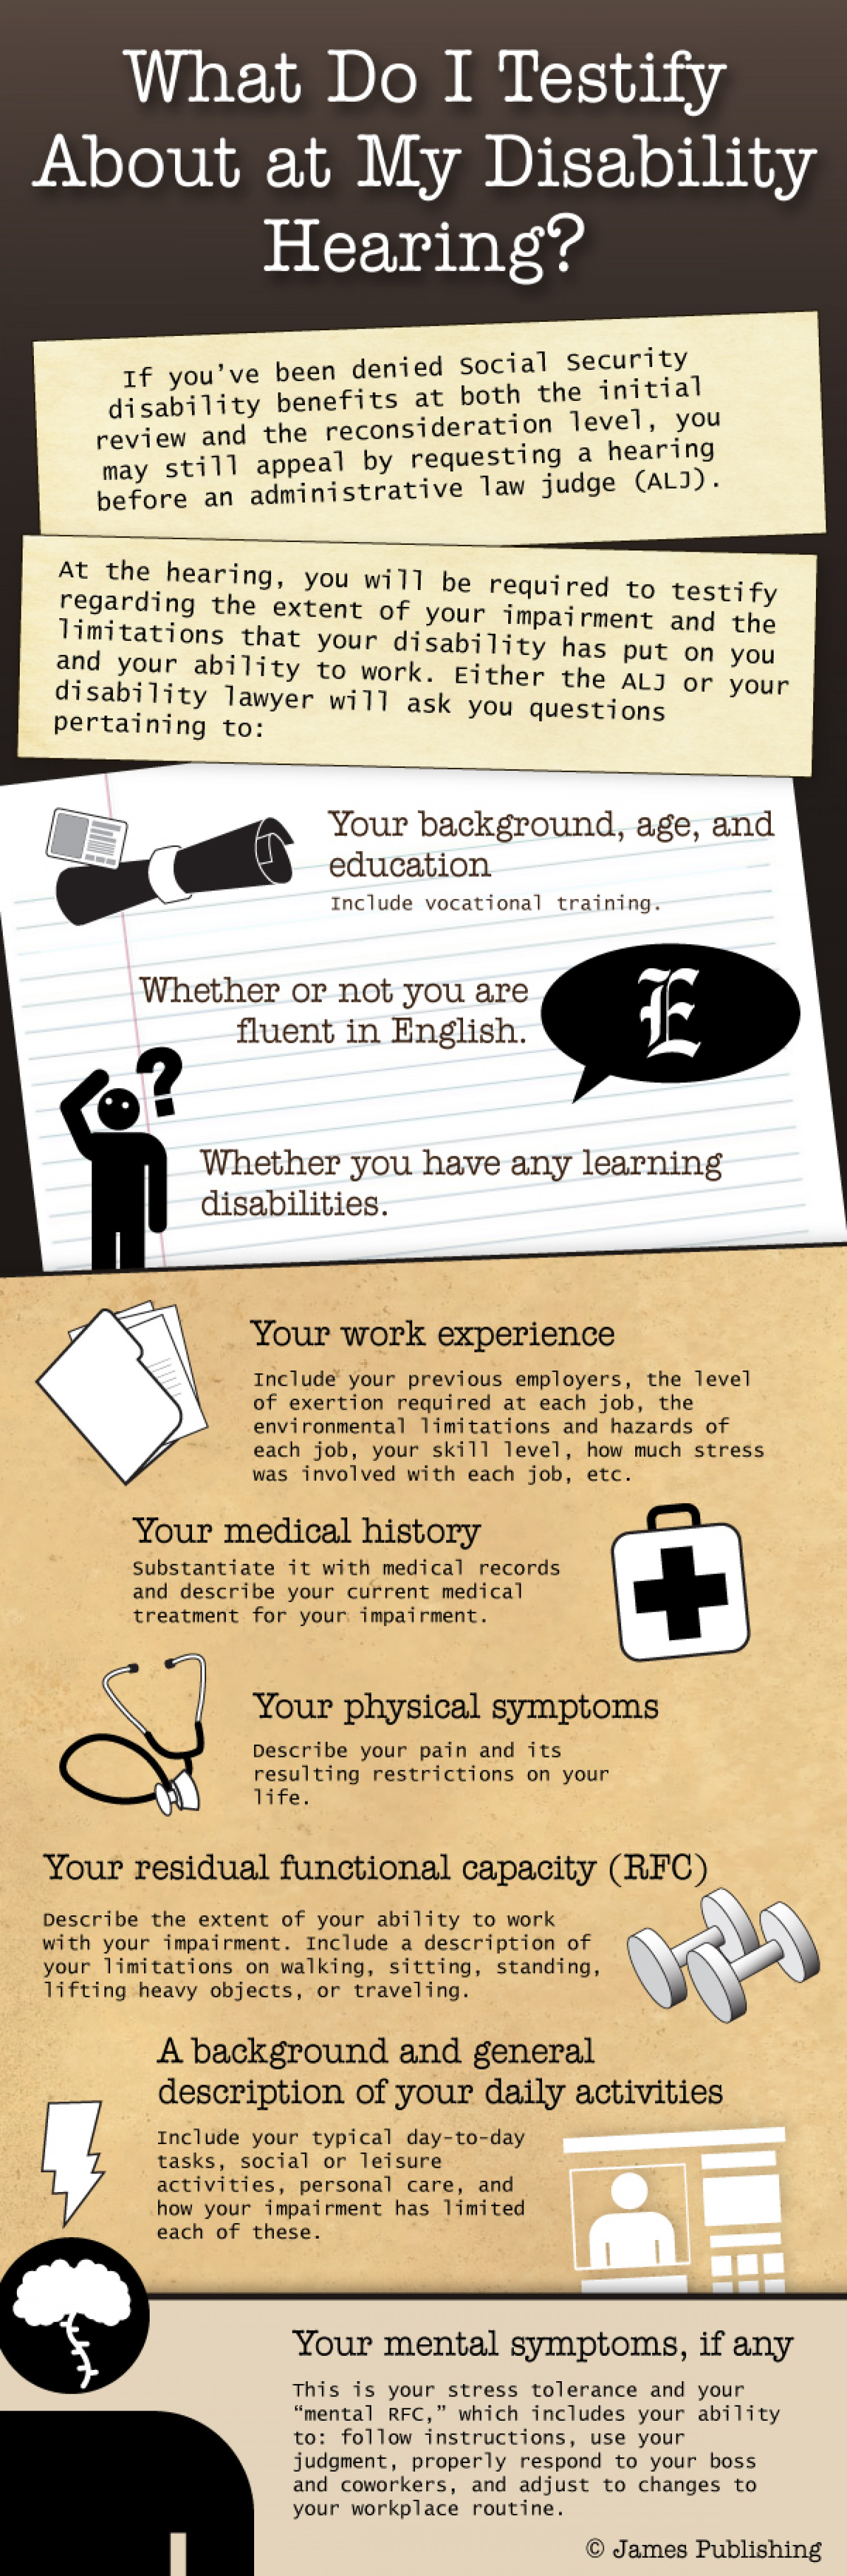 What Do I Testify About at My Disability Hearing Infographic